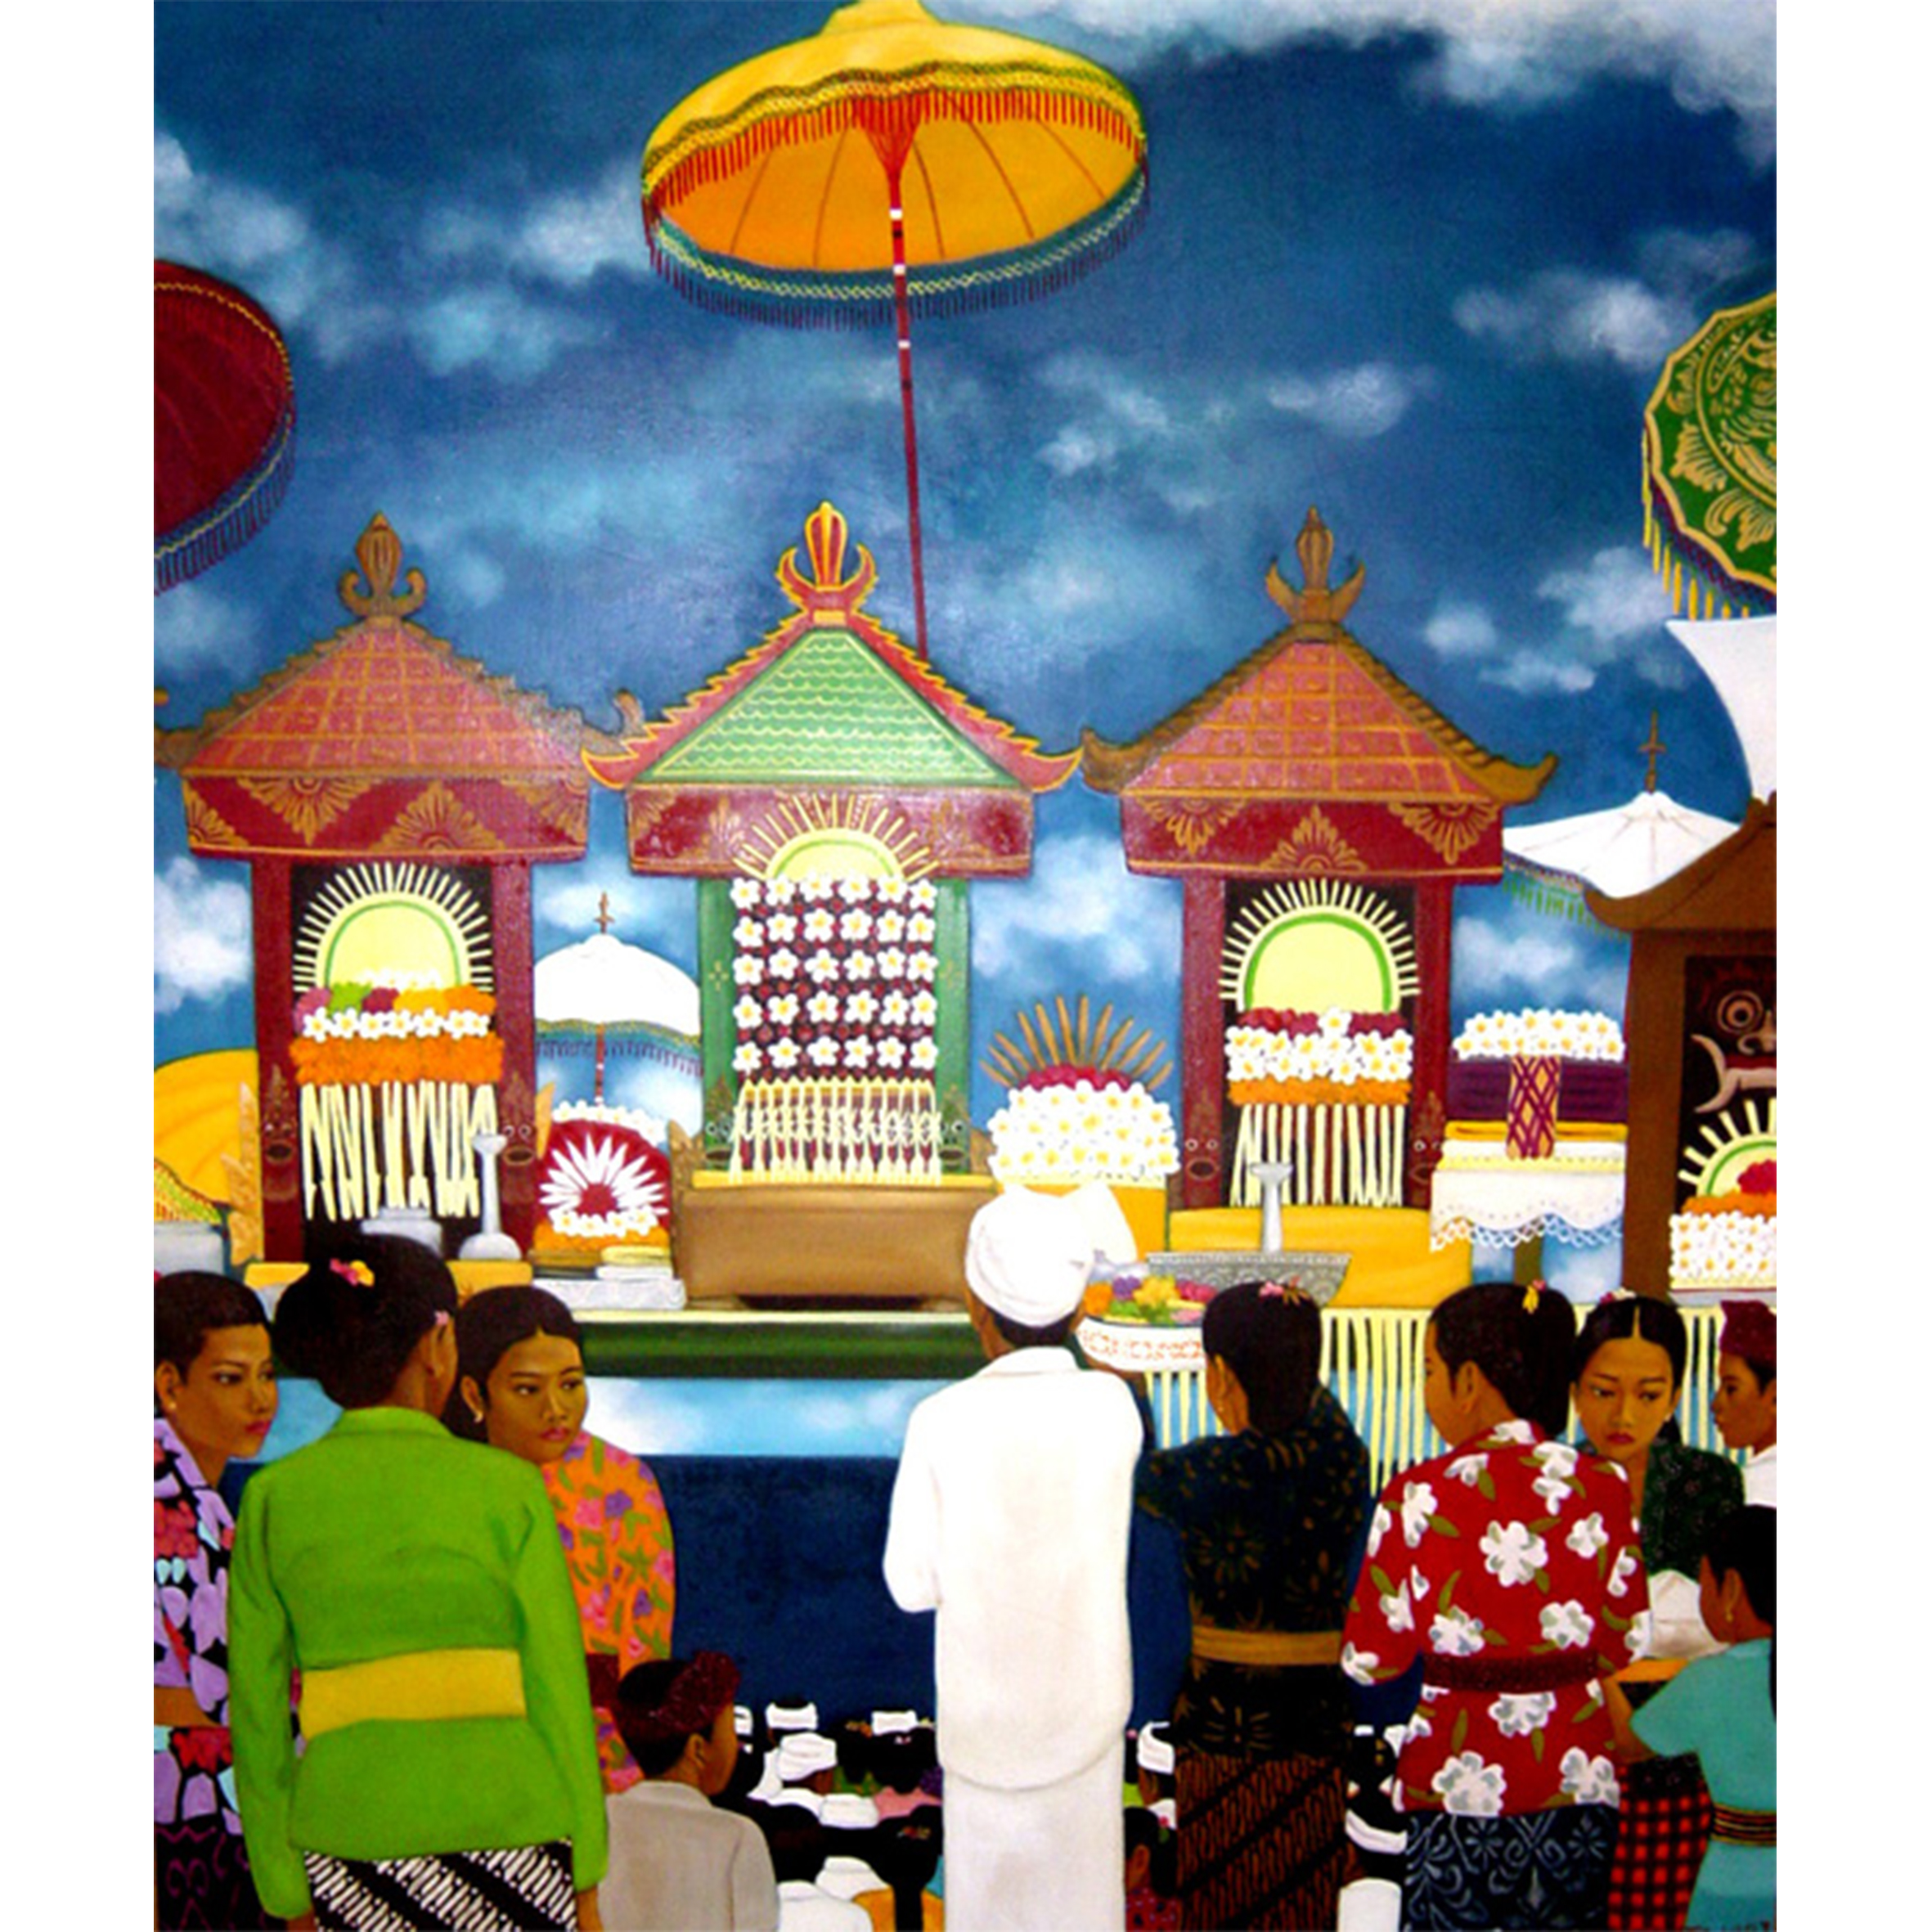 Balinese Temple Ritual, 1996, Oil on Canvas, 95 x 100 cm.jpg